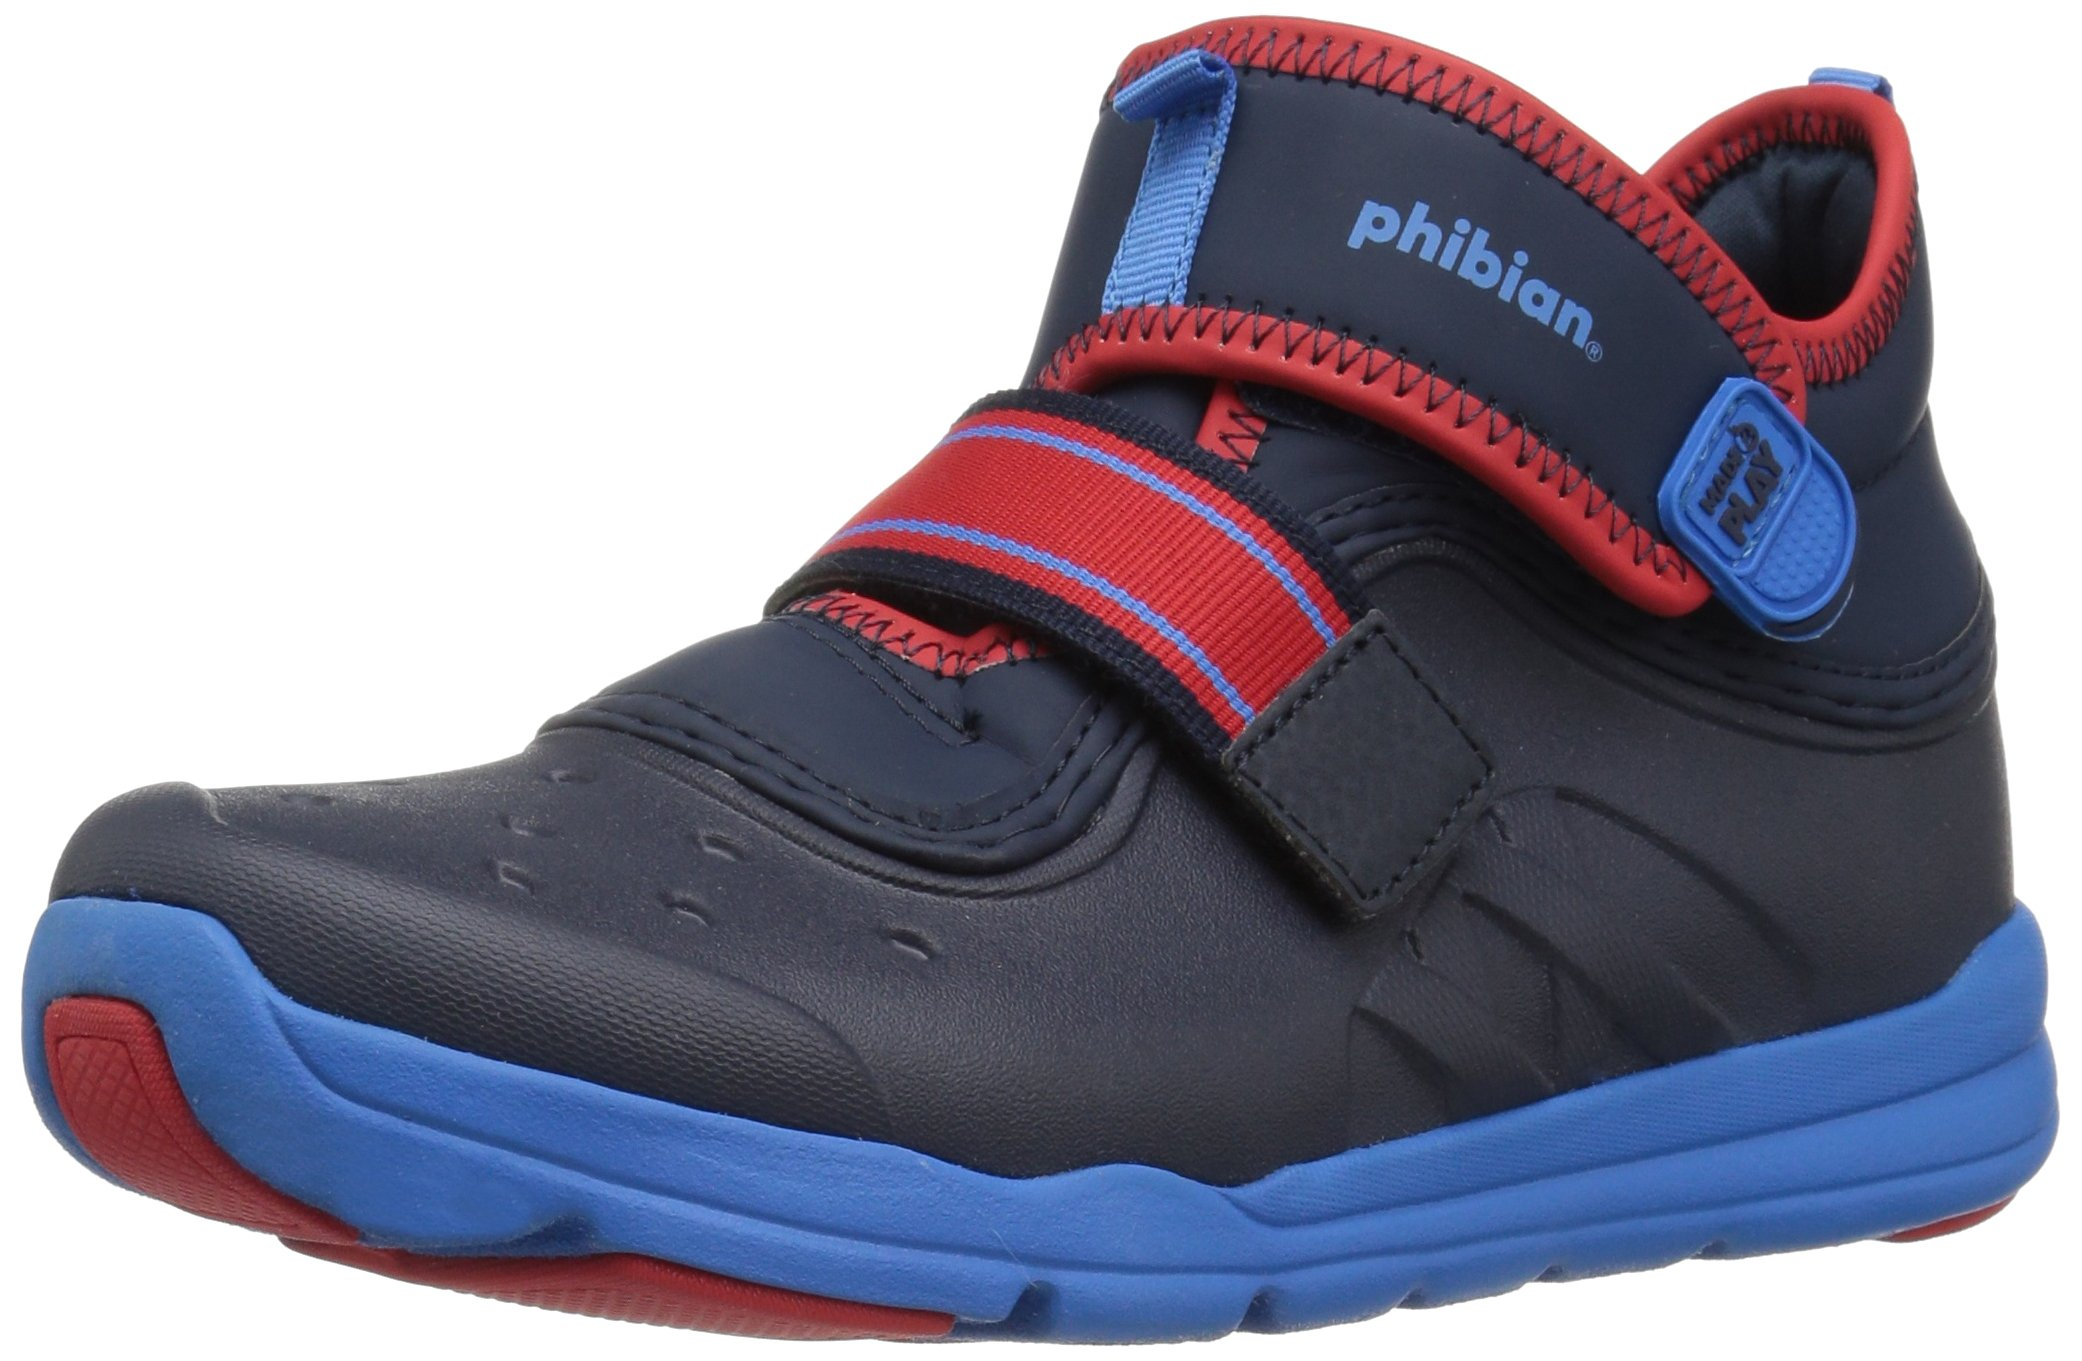 Stride Rite Boys' Made 2 Play Phibian Mid Ankle Boot, Navy, 7 M US Toddler